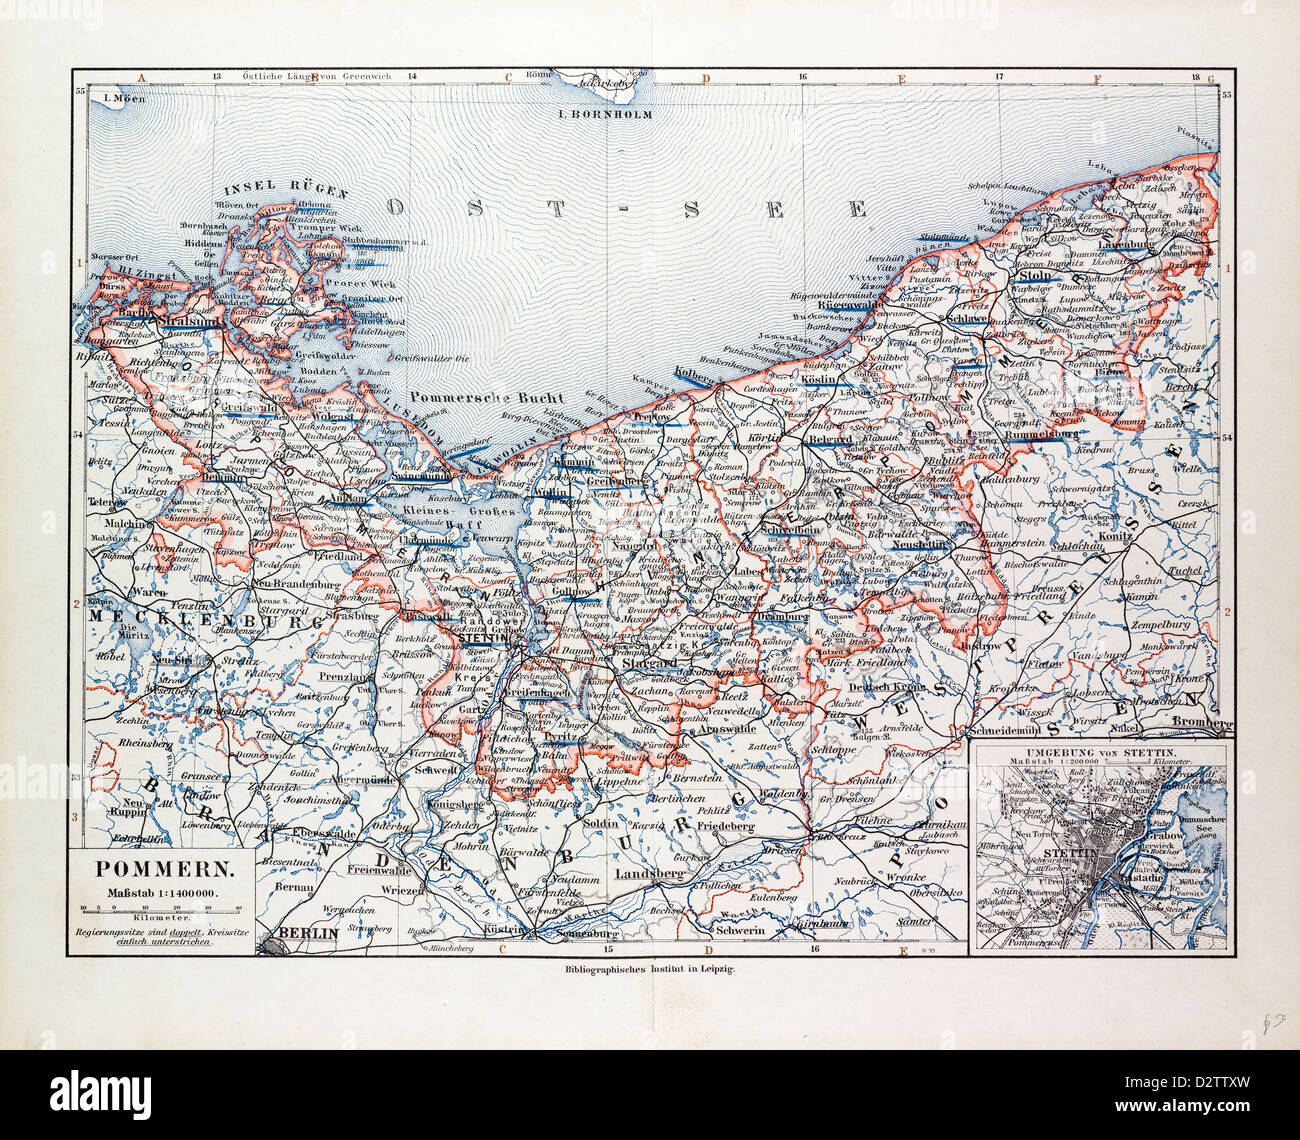 MAP OF POMMERN MECKLENBURGVORPOMMERN GERMANY AND NORTH WEST